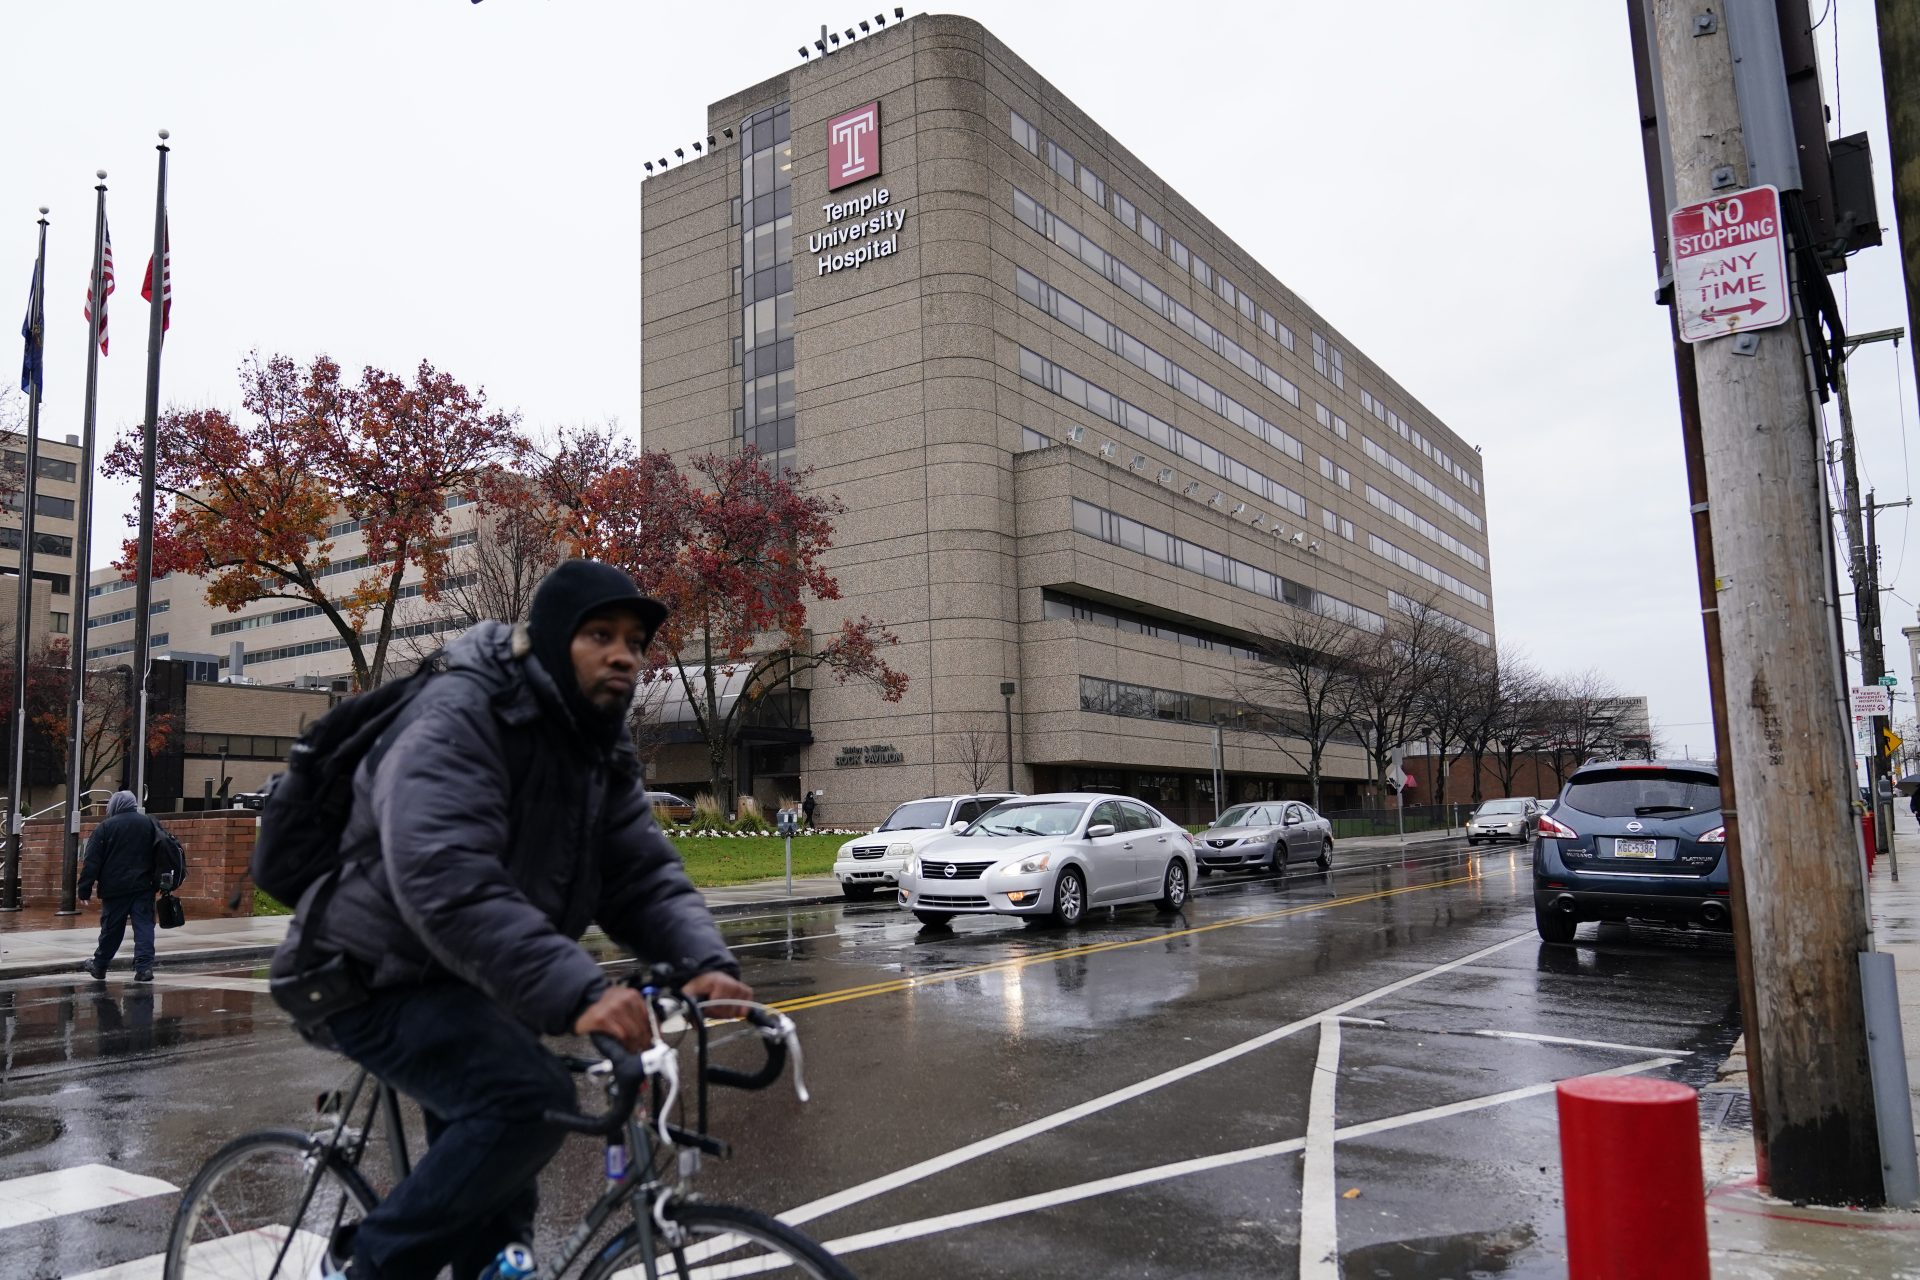 A man rides a bicycle past Temple University Hospital, Friday, Dec. 4, 2020, in Philadelphia. Hospital beds are filling up and medical staffs are being stretched to the limit as Pennsylvania's health care system copes with a growing number of seriously ill COVID-19 patients.